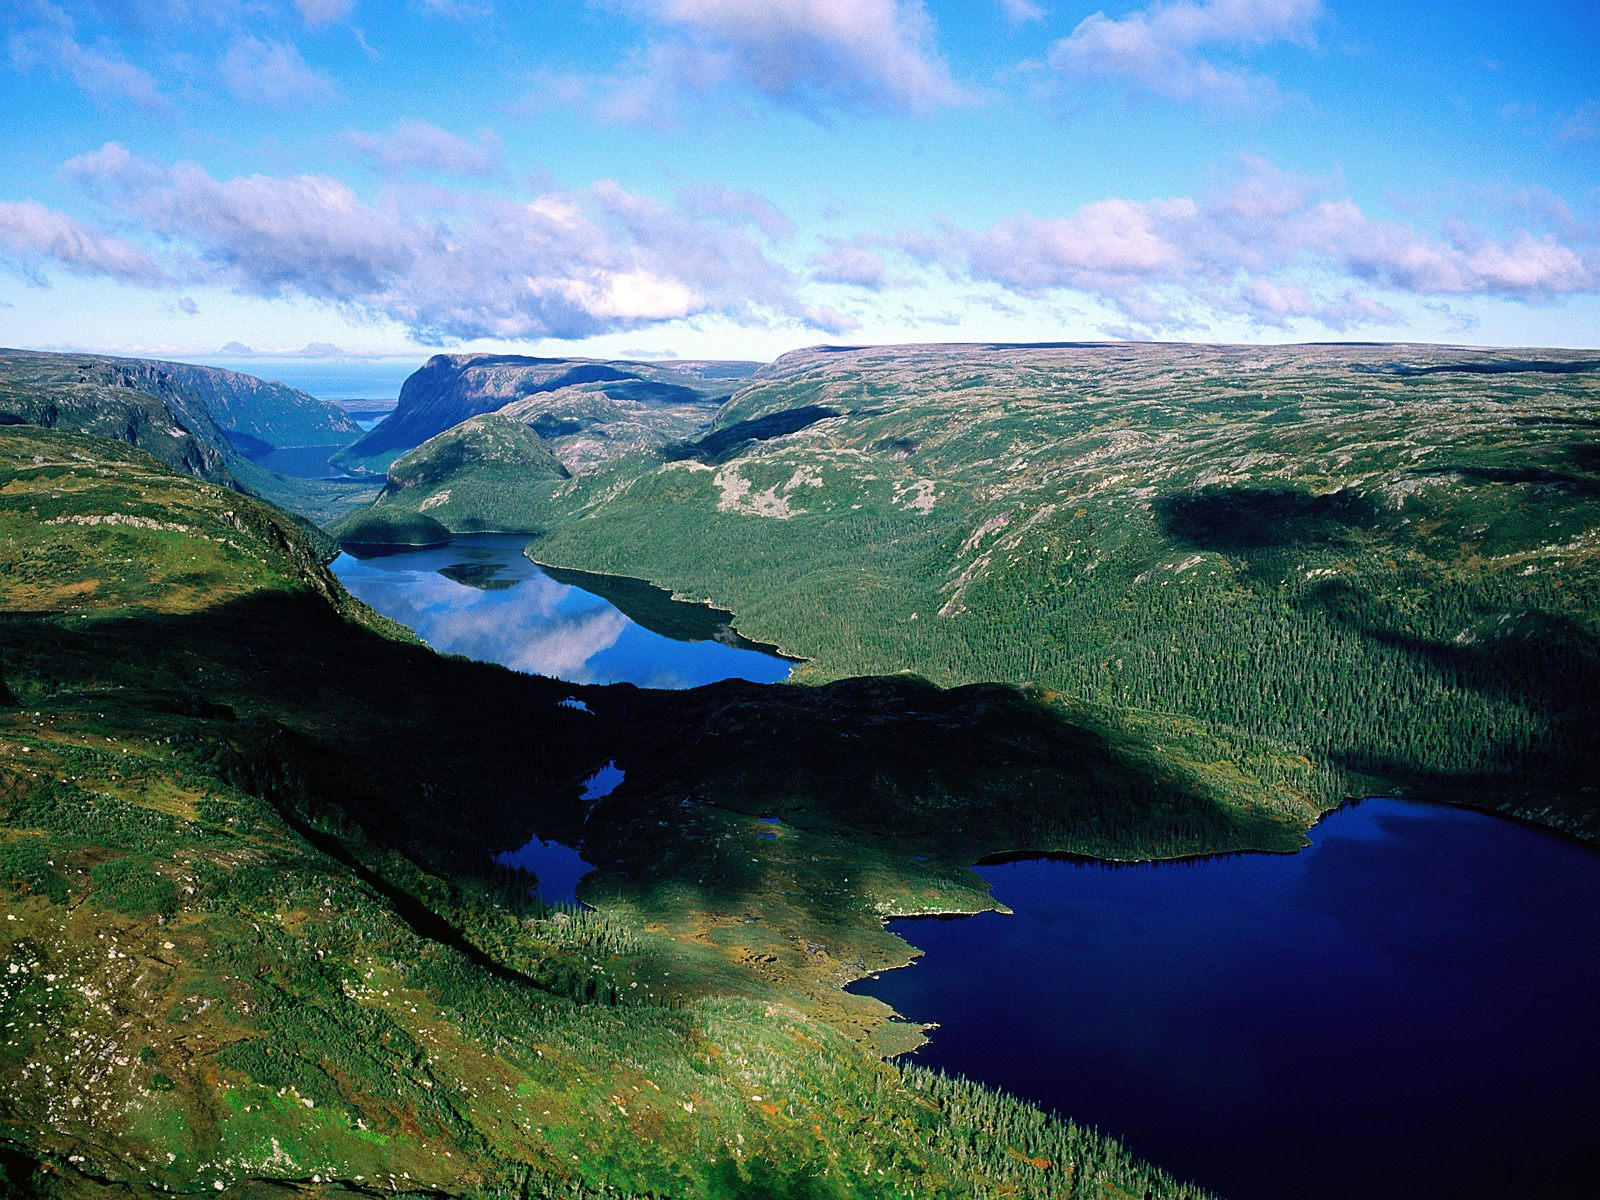 Gros Morne National Park Newfoundland Canada